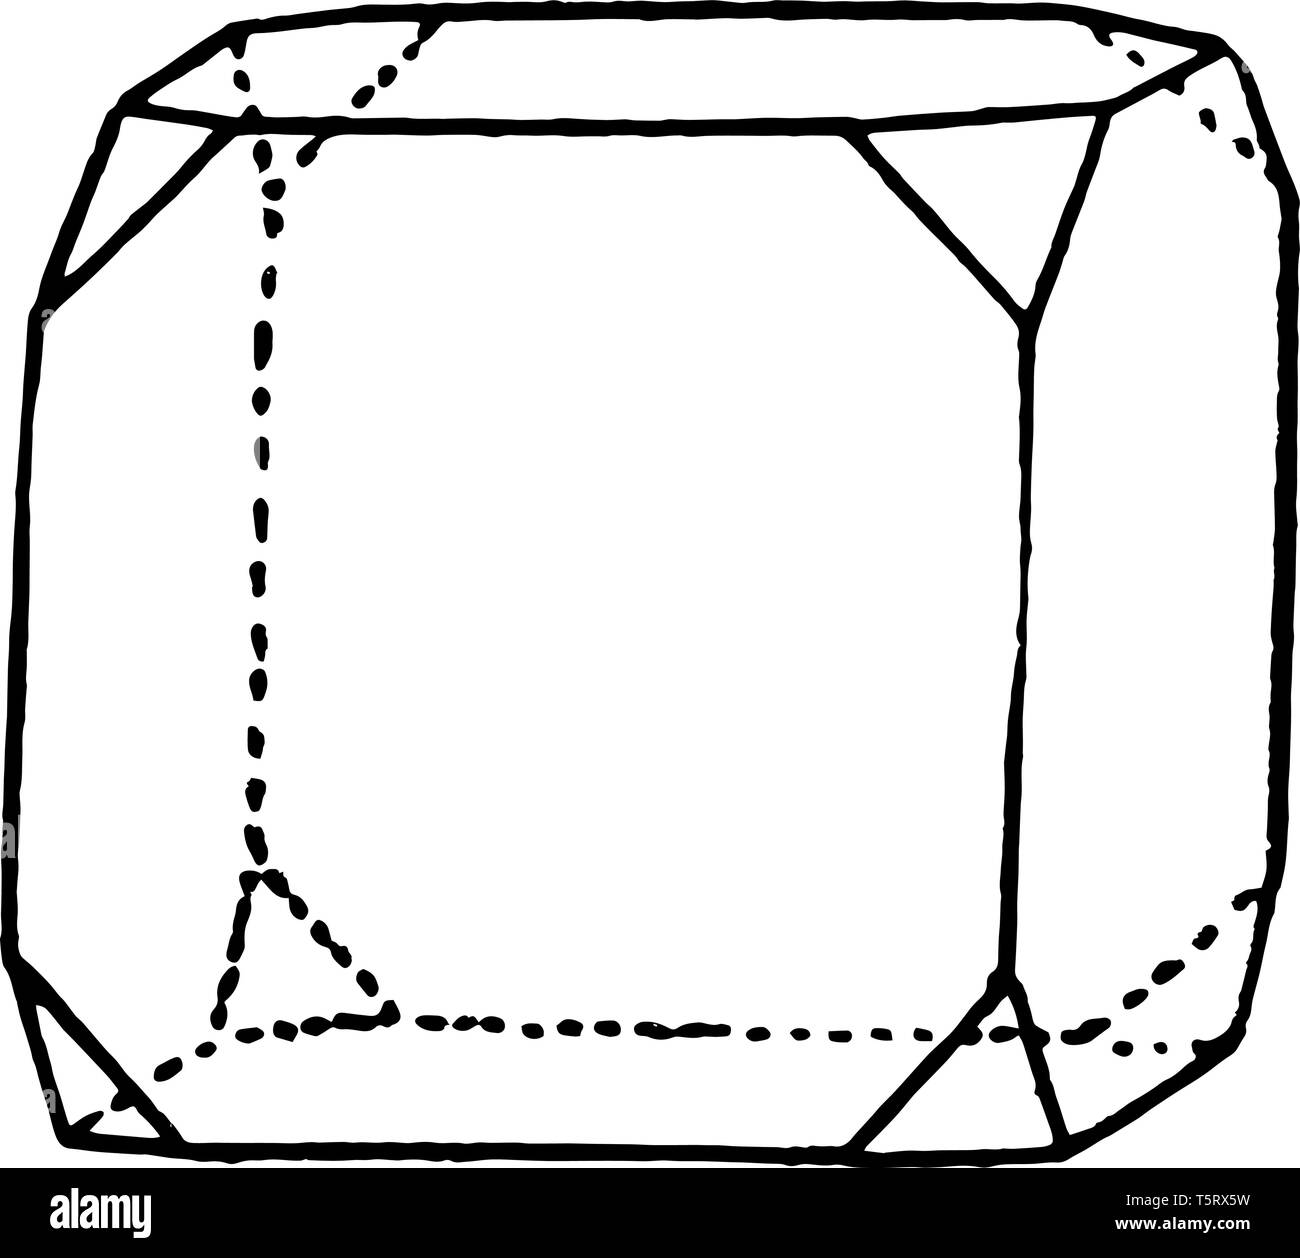 The sample combining a hexahedron and an octahedron. The angles of the triangular Cube, vintage line drawing or engraving illustration. - Stock Image